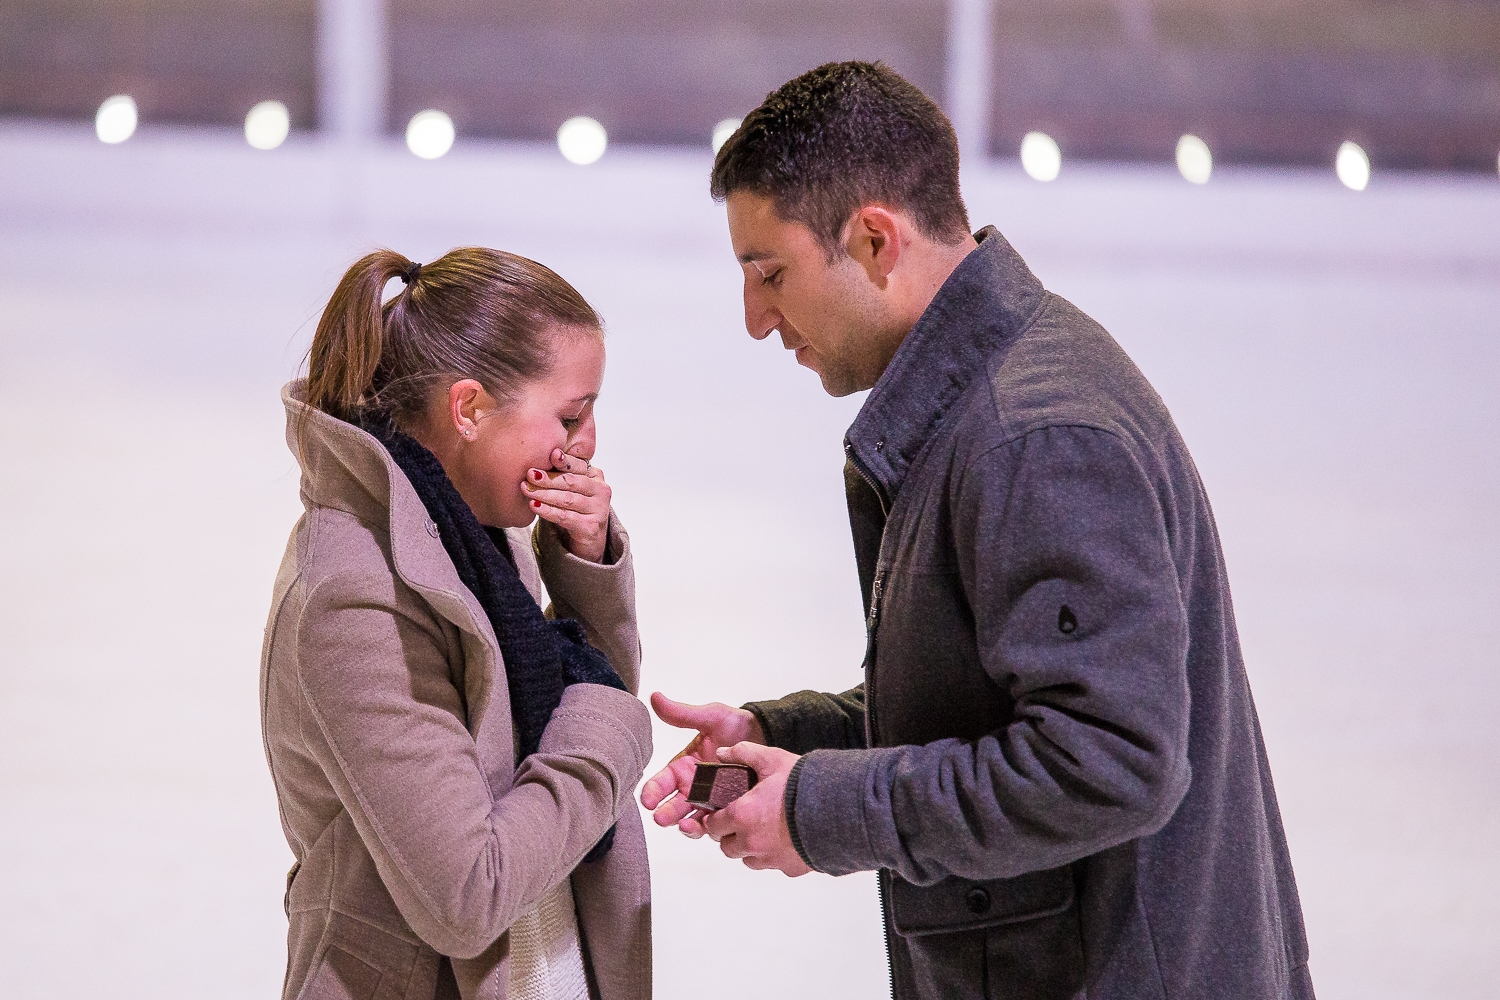 Engagement-photography-central-park-2016-2-2.jpg